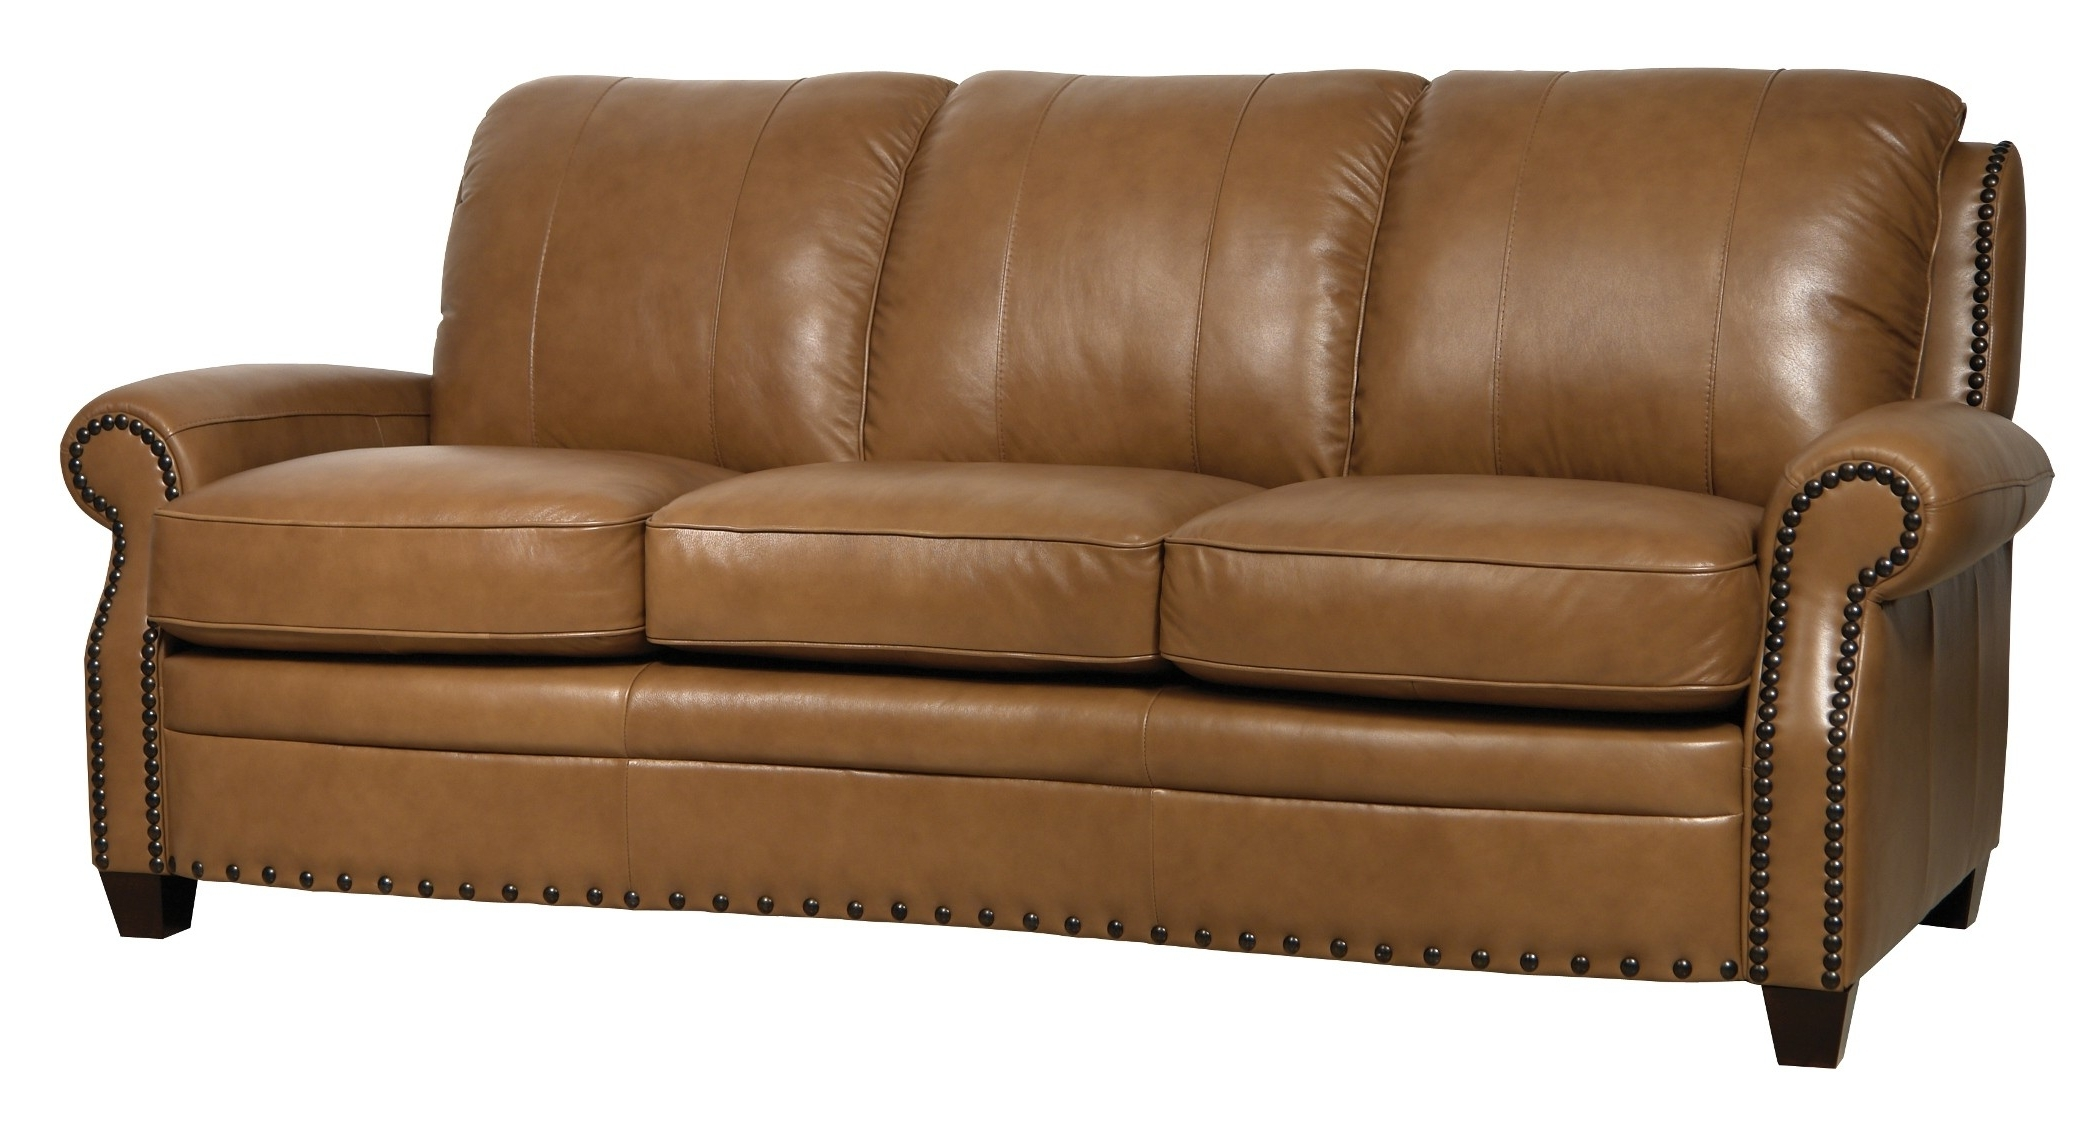 Newest Colored Leather Sofas And Ultra Modern Camel Leather Sectional In Camel Sectional Sofas (View 20 of 20)